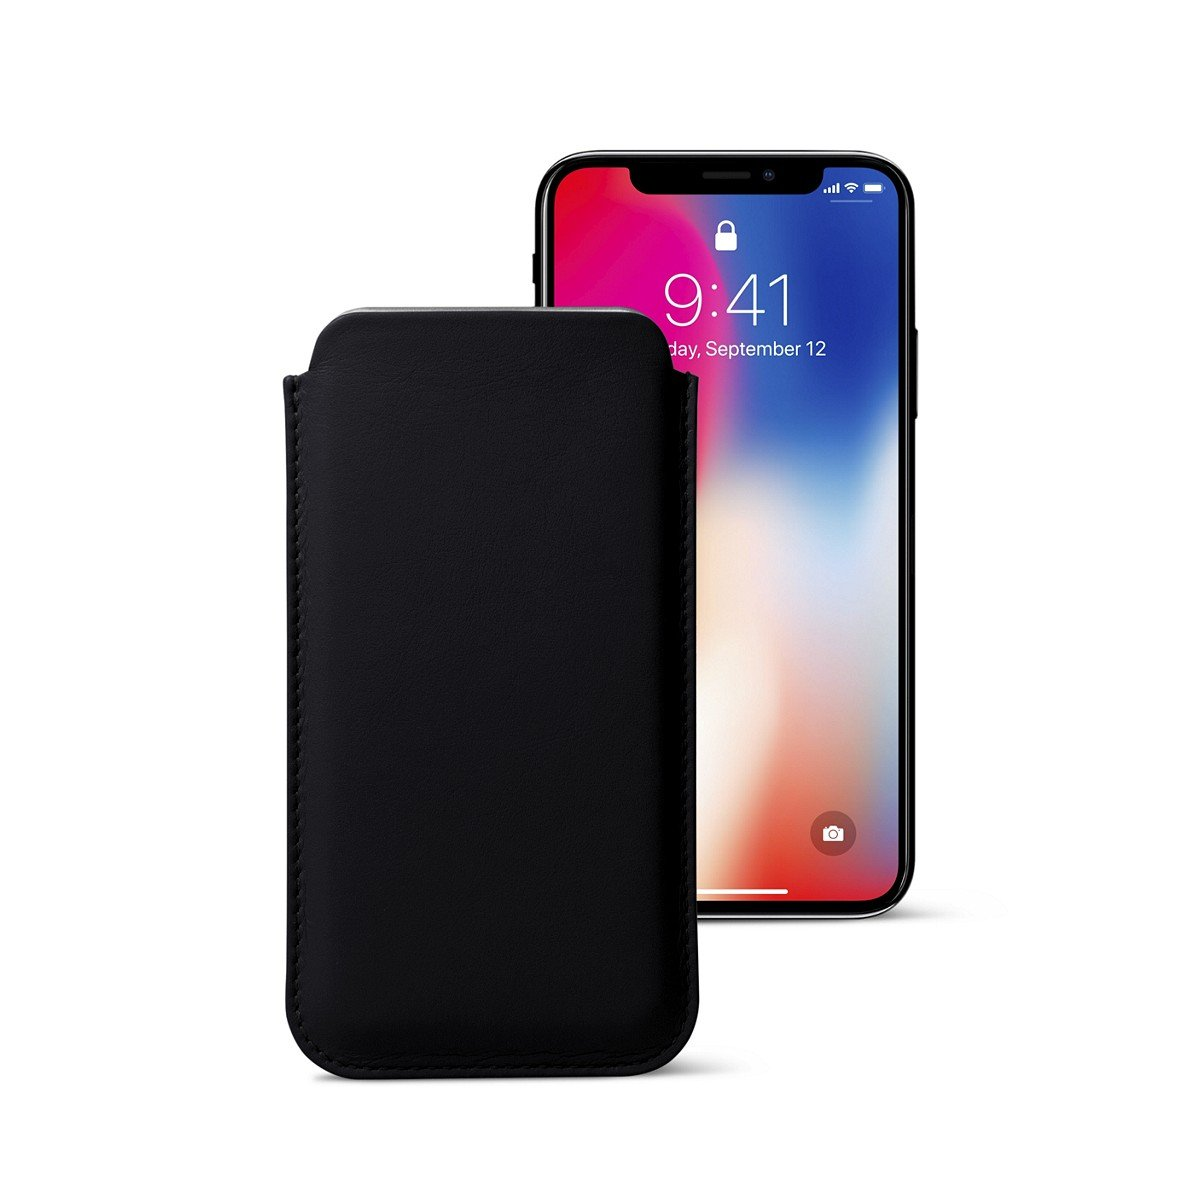 Lucrin - Classic Case for iPhone X - Black - Smooth Leather